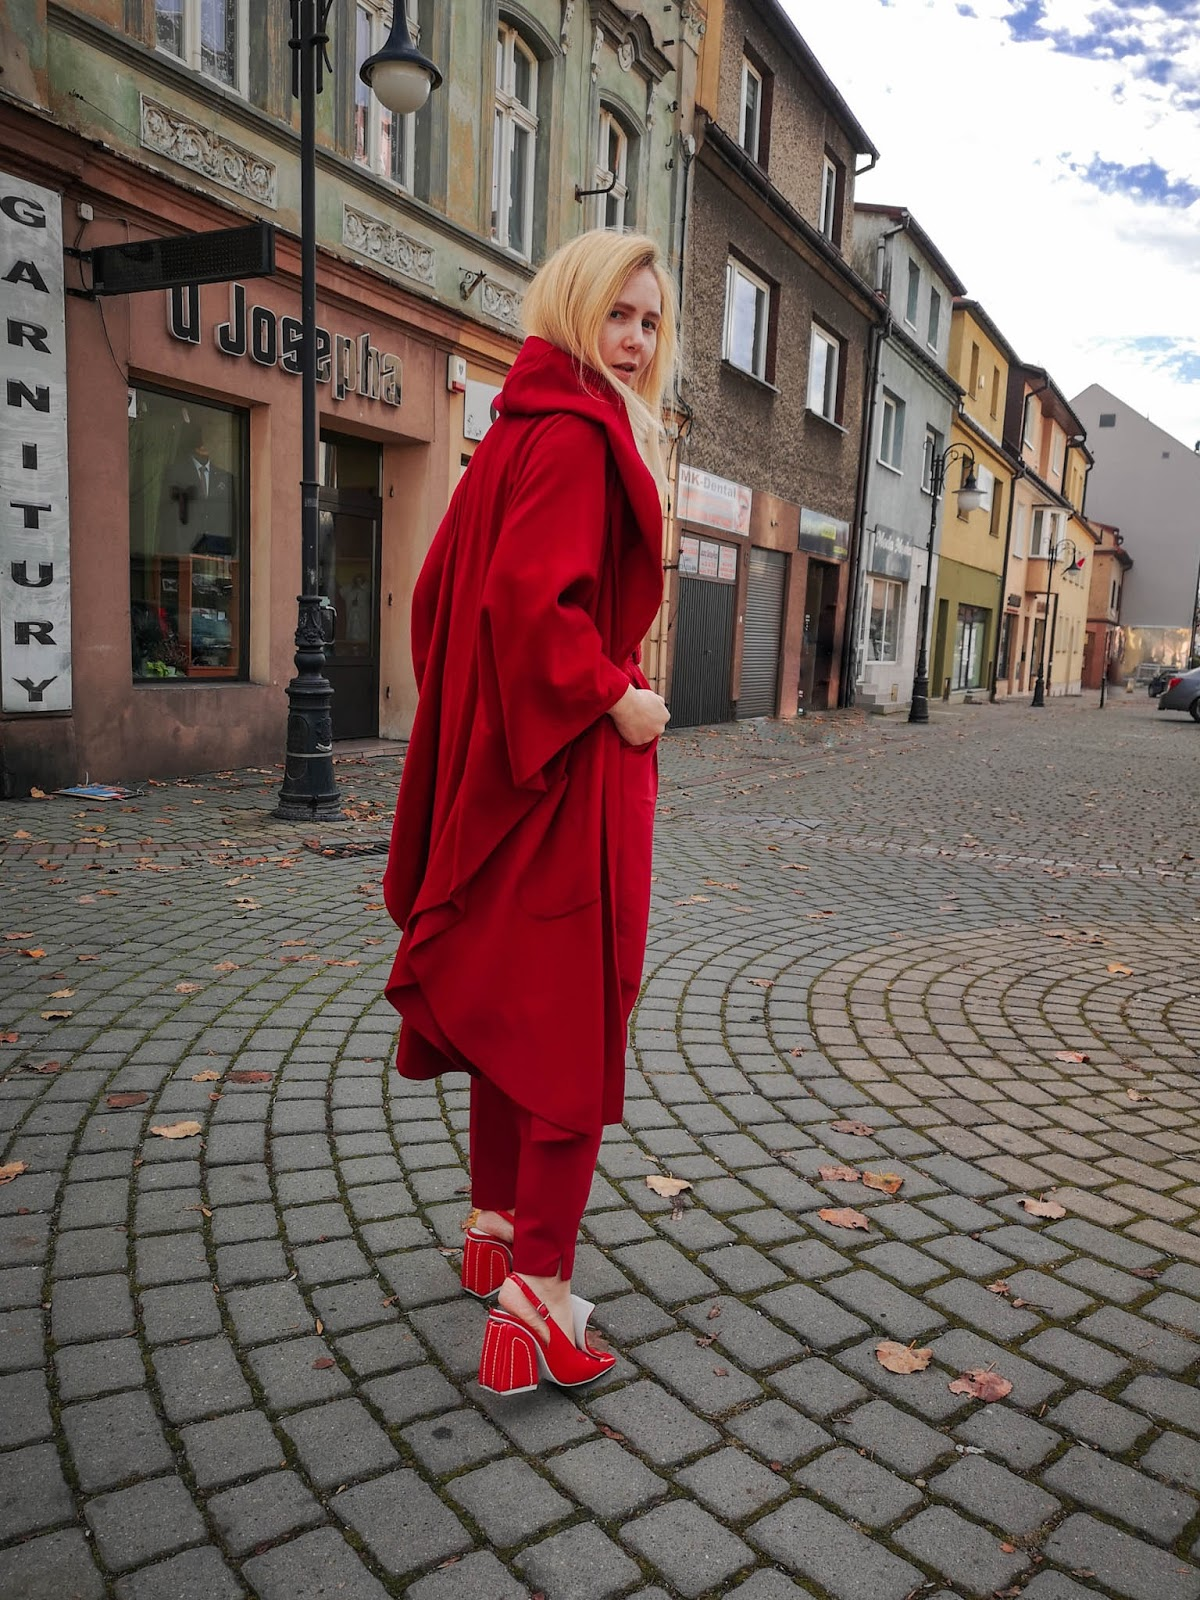 #redtotallook #fashion #inspiration #autumnvibes #red #jeffreycampbell #poncho #redponcho